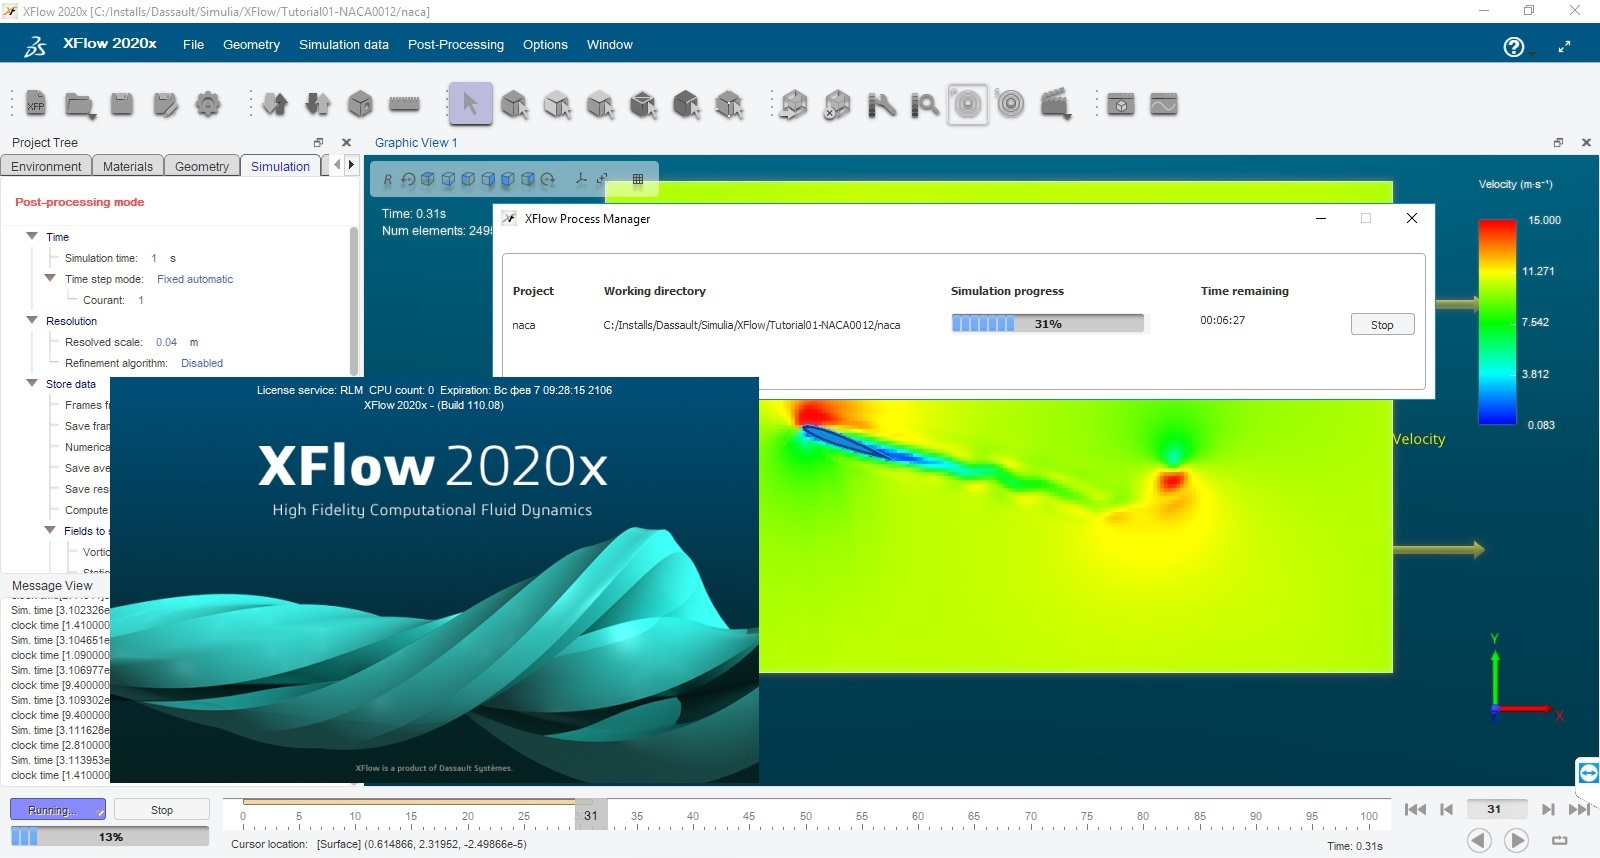 Working with DS Simulia XFlow 2020x full license